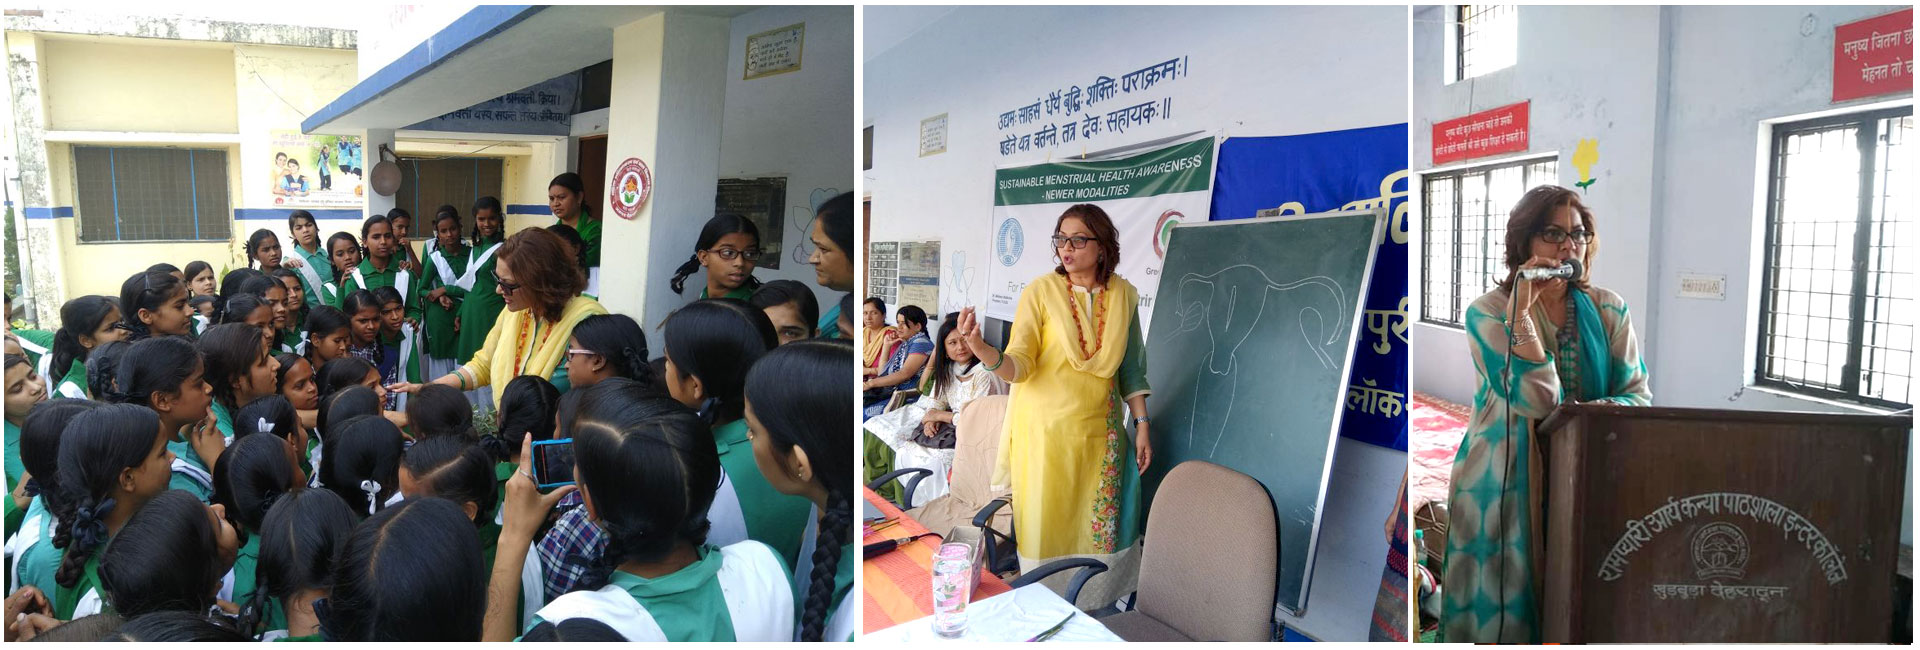 Dr Sumita Prabhakar gave interactive health talk on Menstrual Hygiene Management